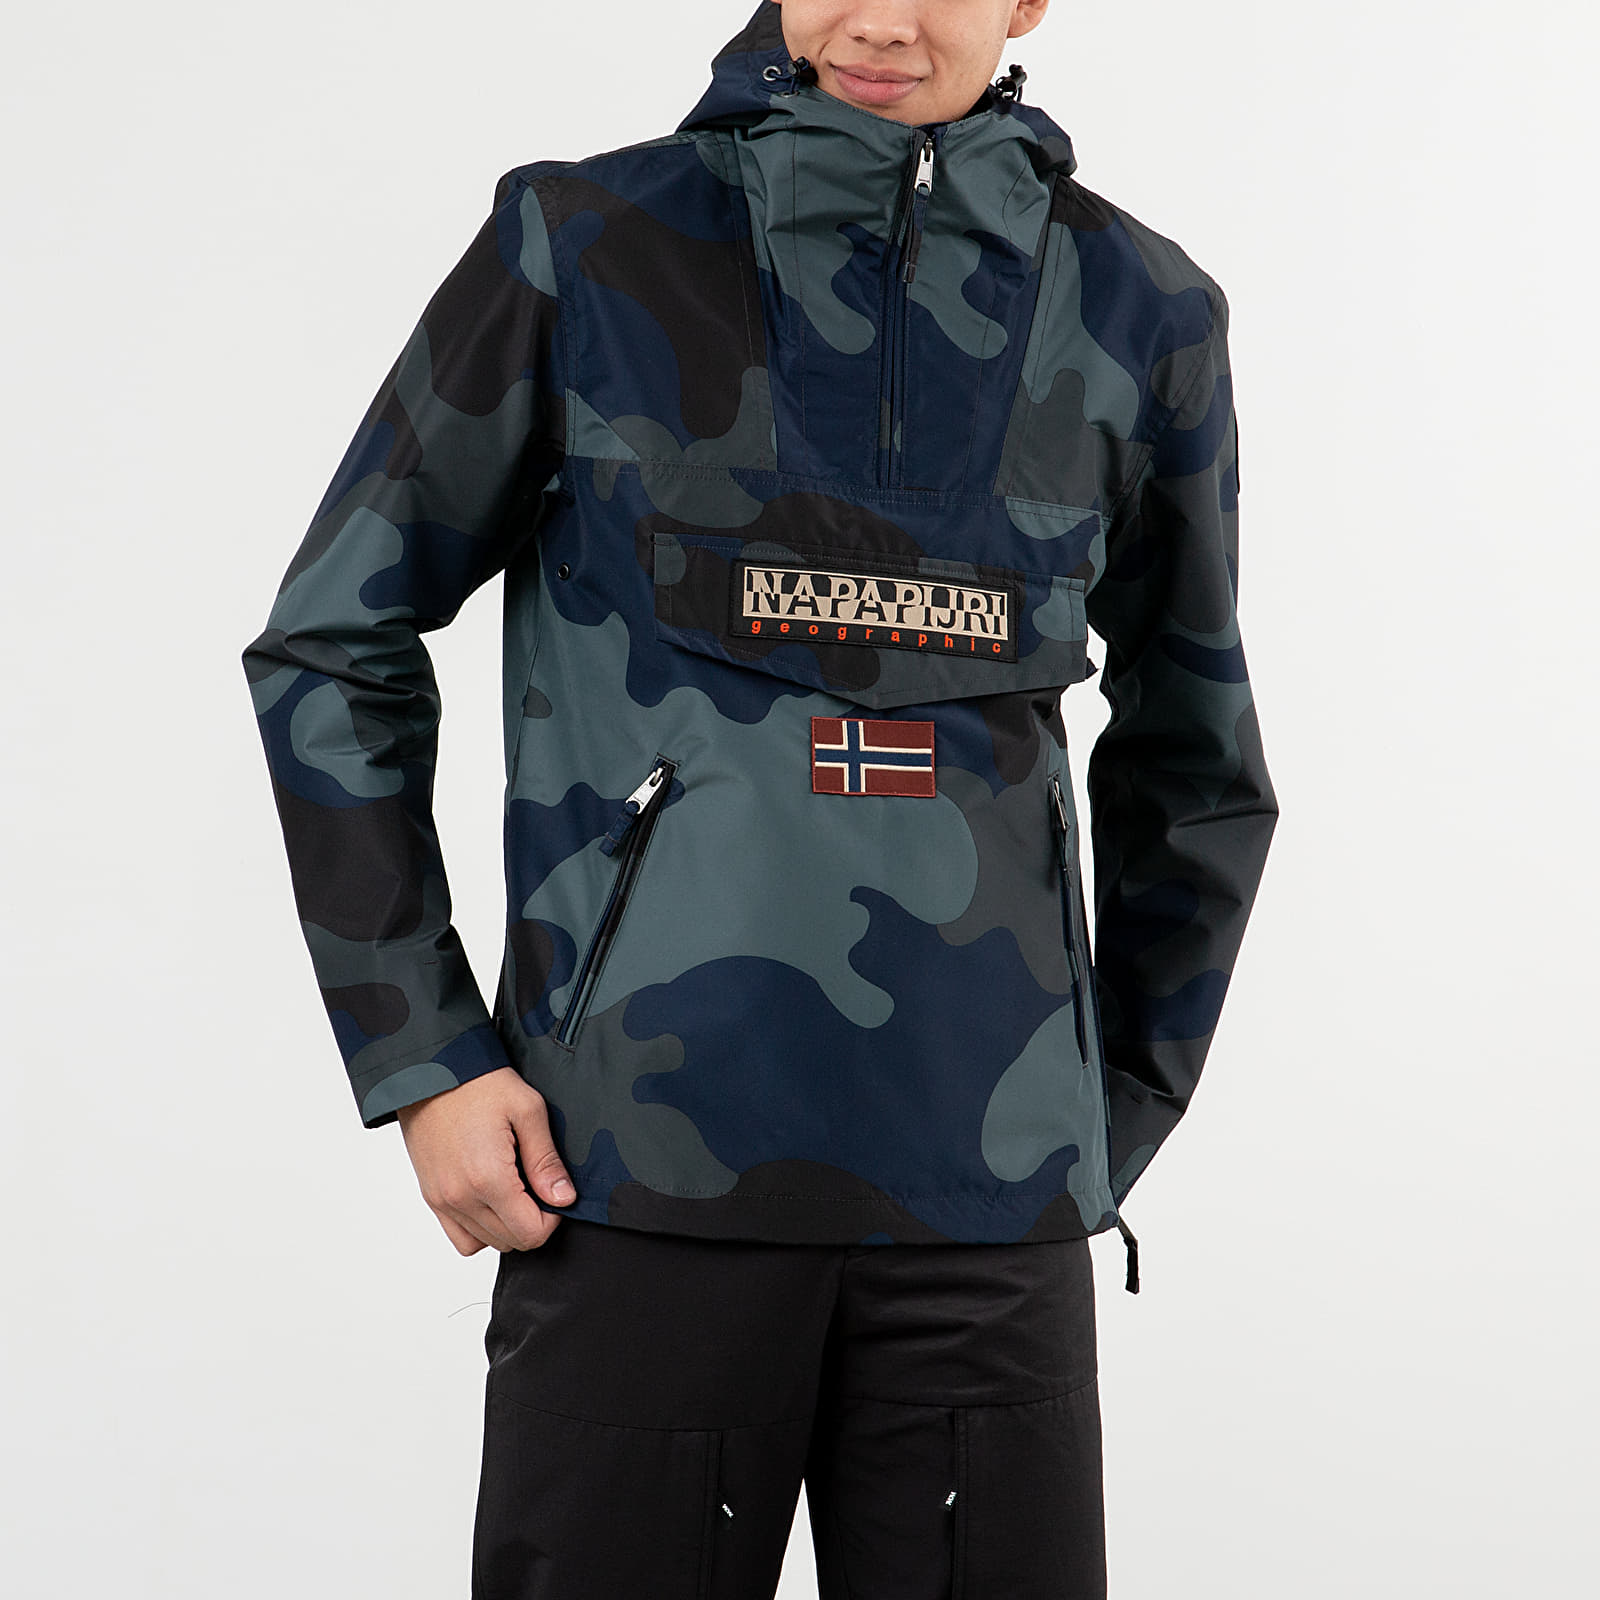 Bundy NAPAPIJRI Rainforest S Print Jacket Black Camo